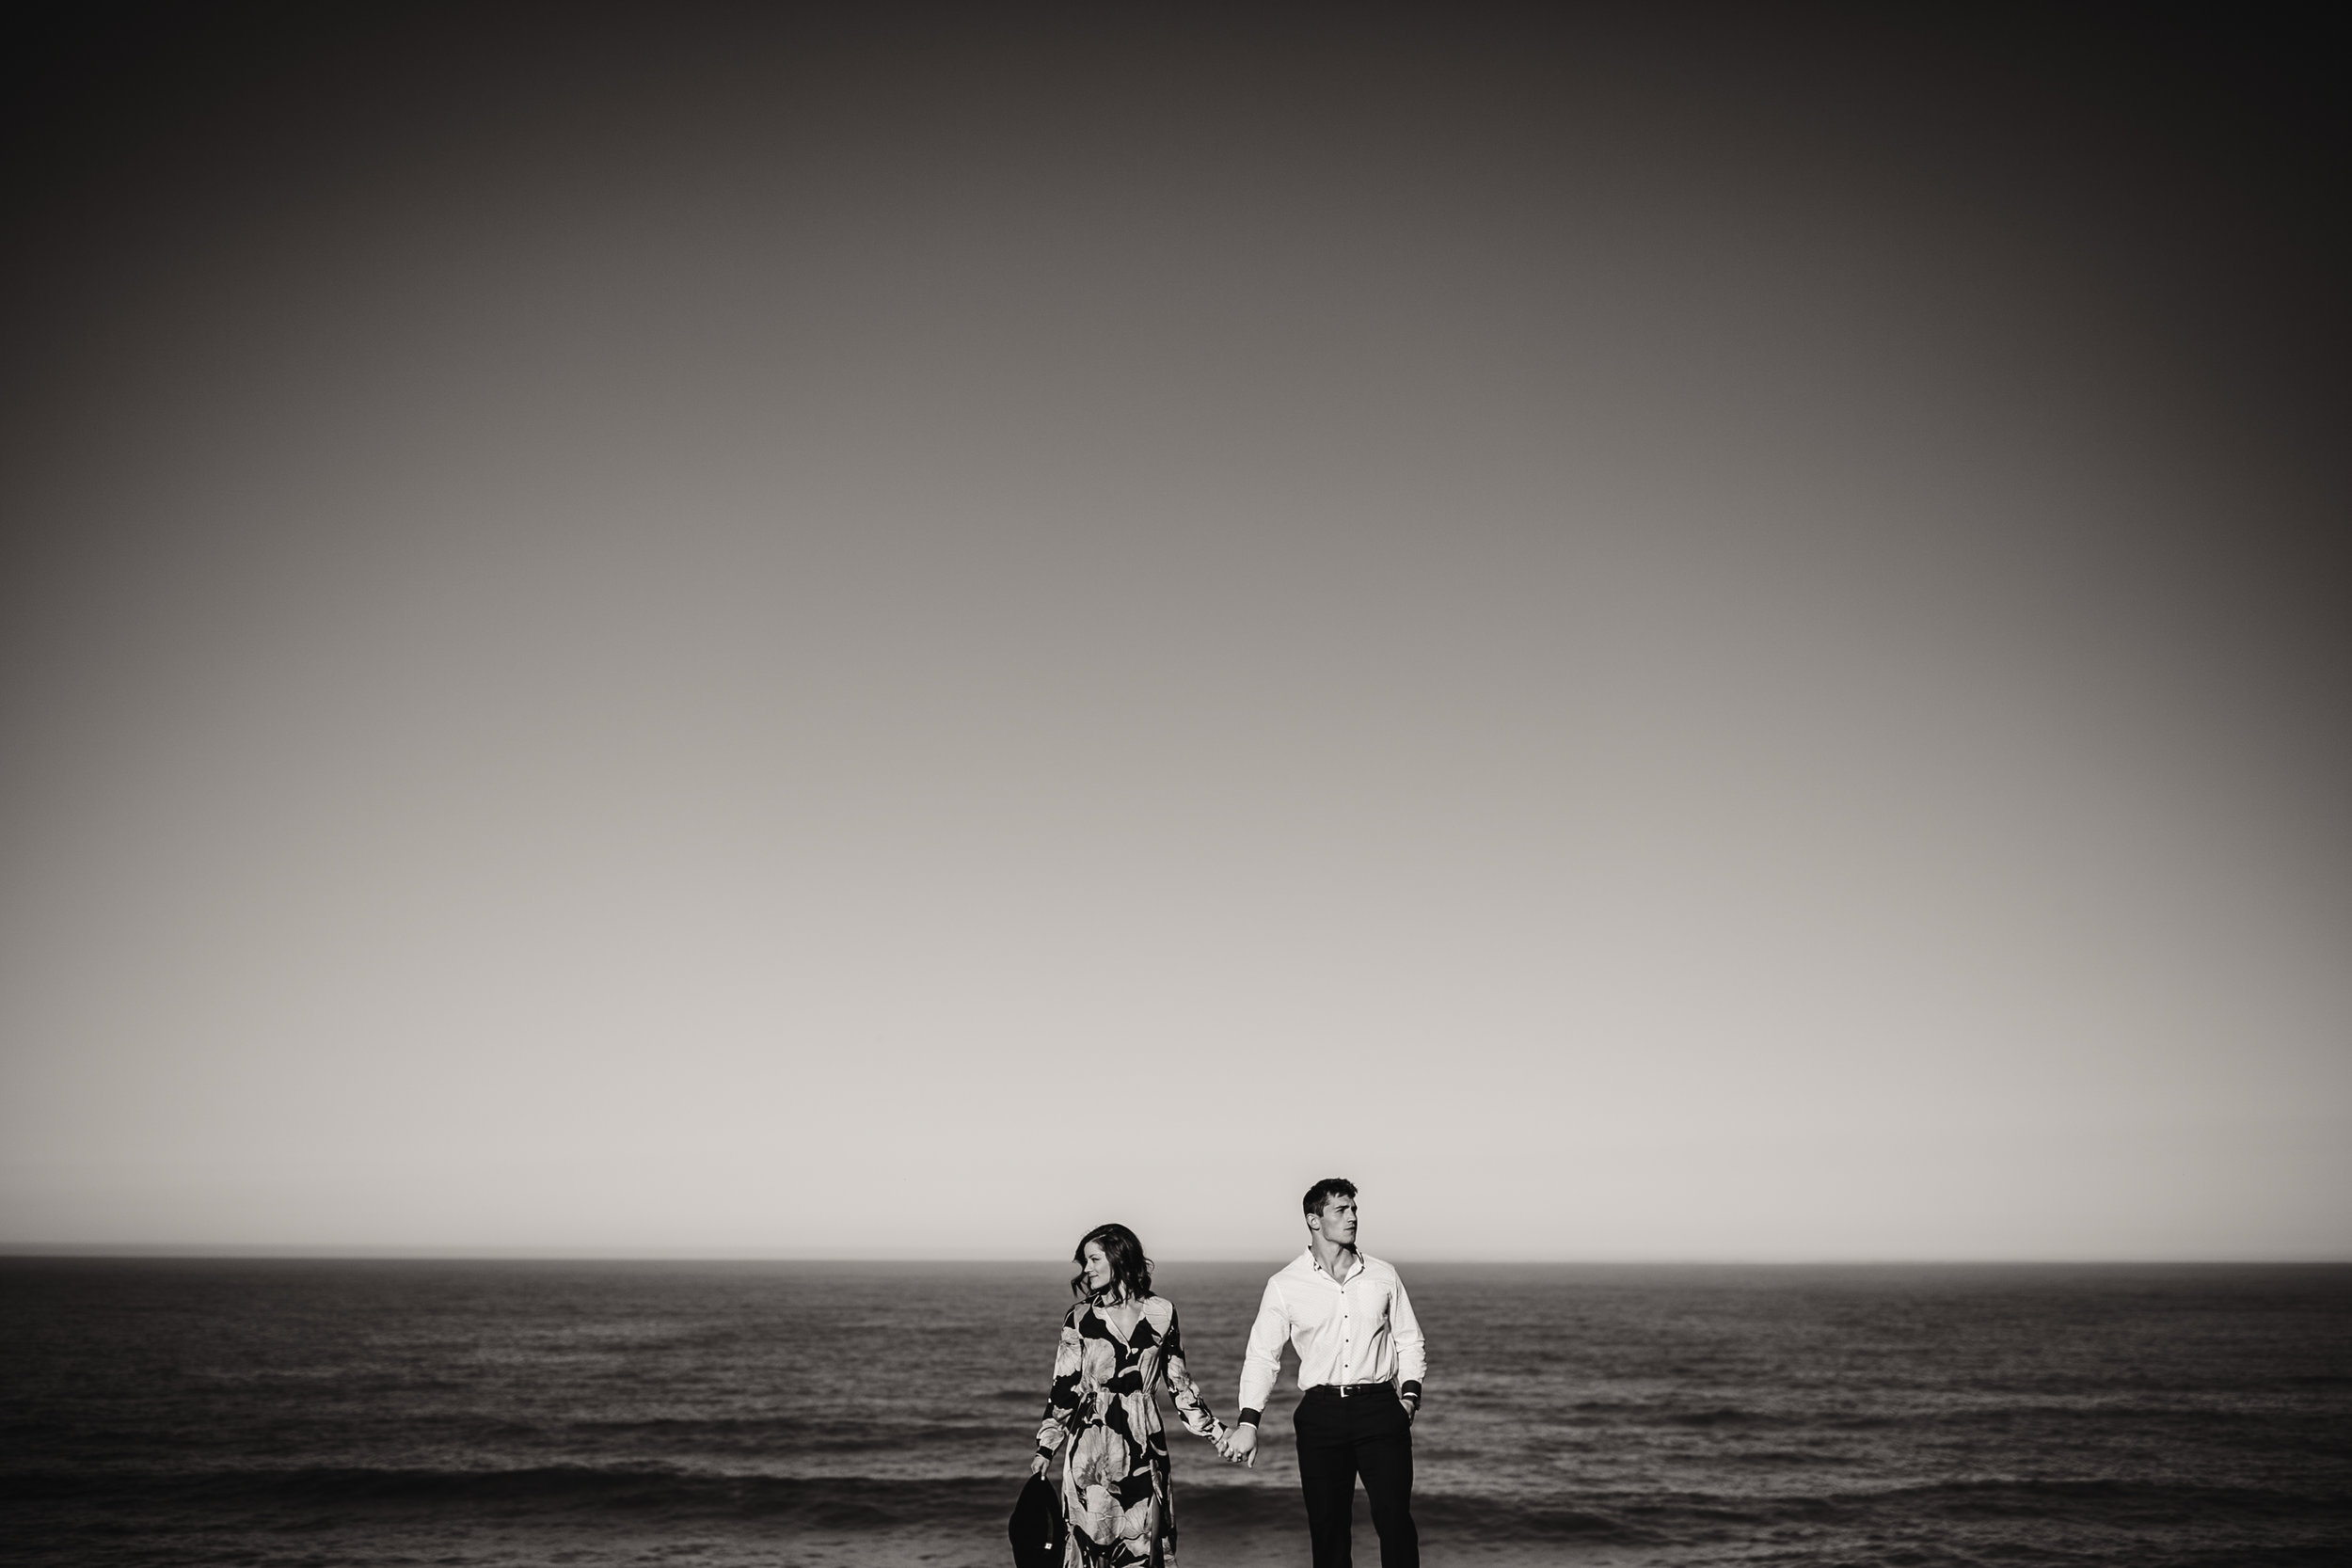 gracetphotography-destination-wedding-photographer-bigsur-adventure-elopement-36.jpg